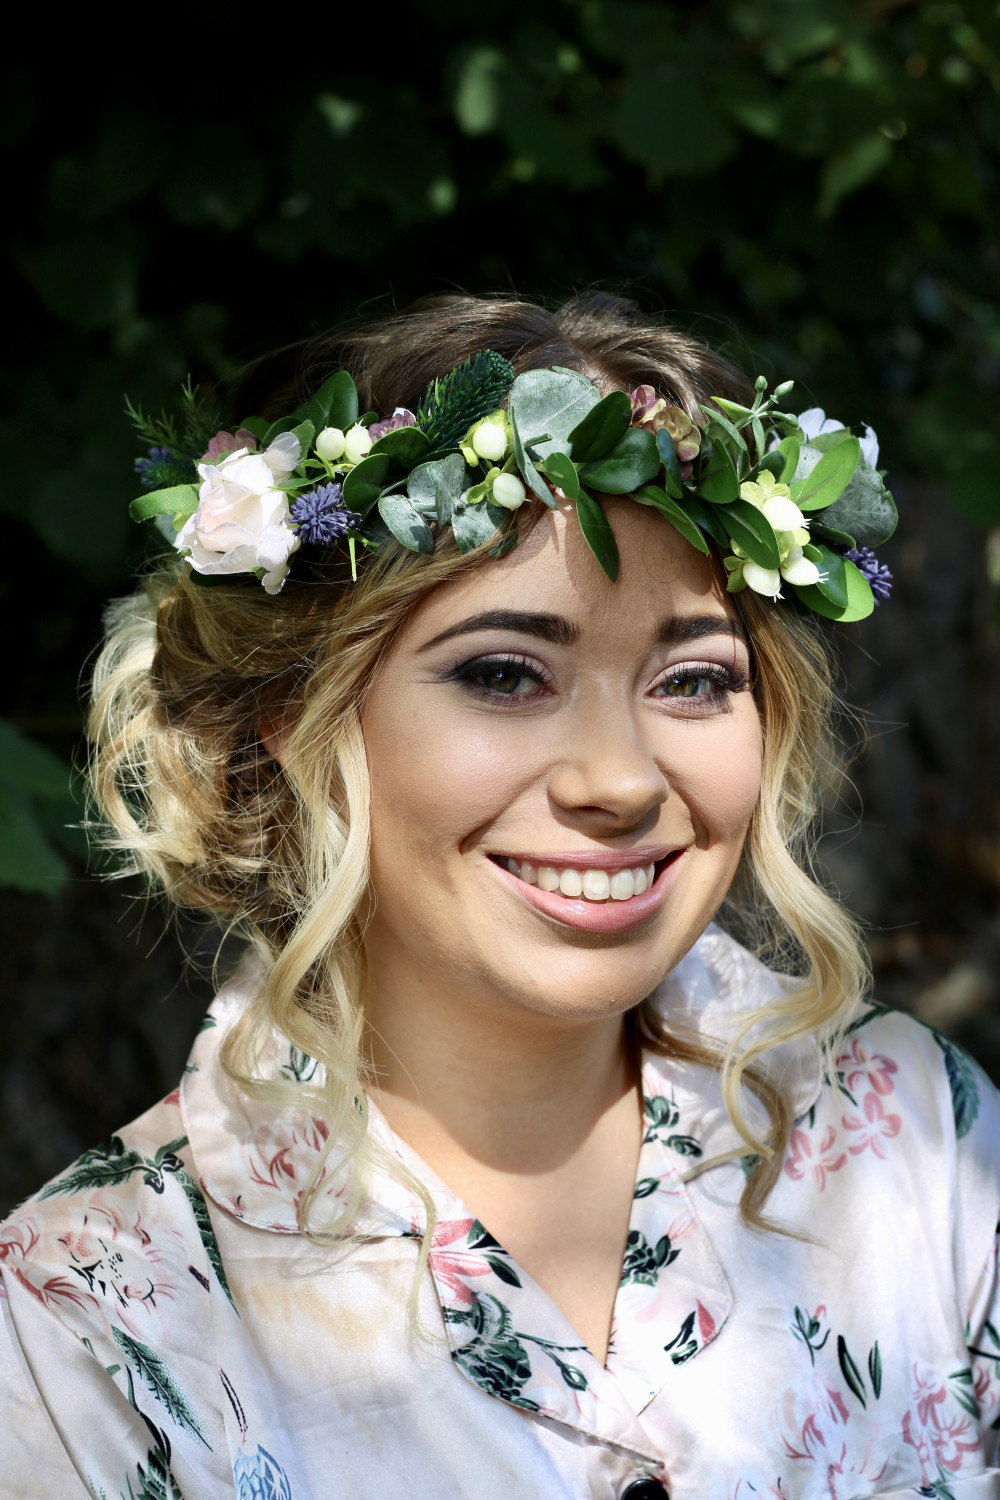 A fresh face with pretty taupes and pinks as the colour palette - Make Me Bridal Artist: Kimberly Holland Bridal Hair & Makeup Artist. Photography by: Kimberly Holland. #flowercrown #bridalmakeup #glow #bridalhair #flowersinherhair #pretty #fresh #lashextensions #weddinghair #bridalhairandmakeup